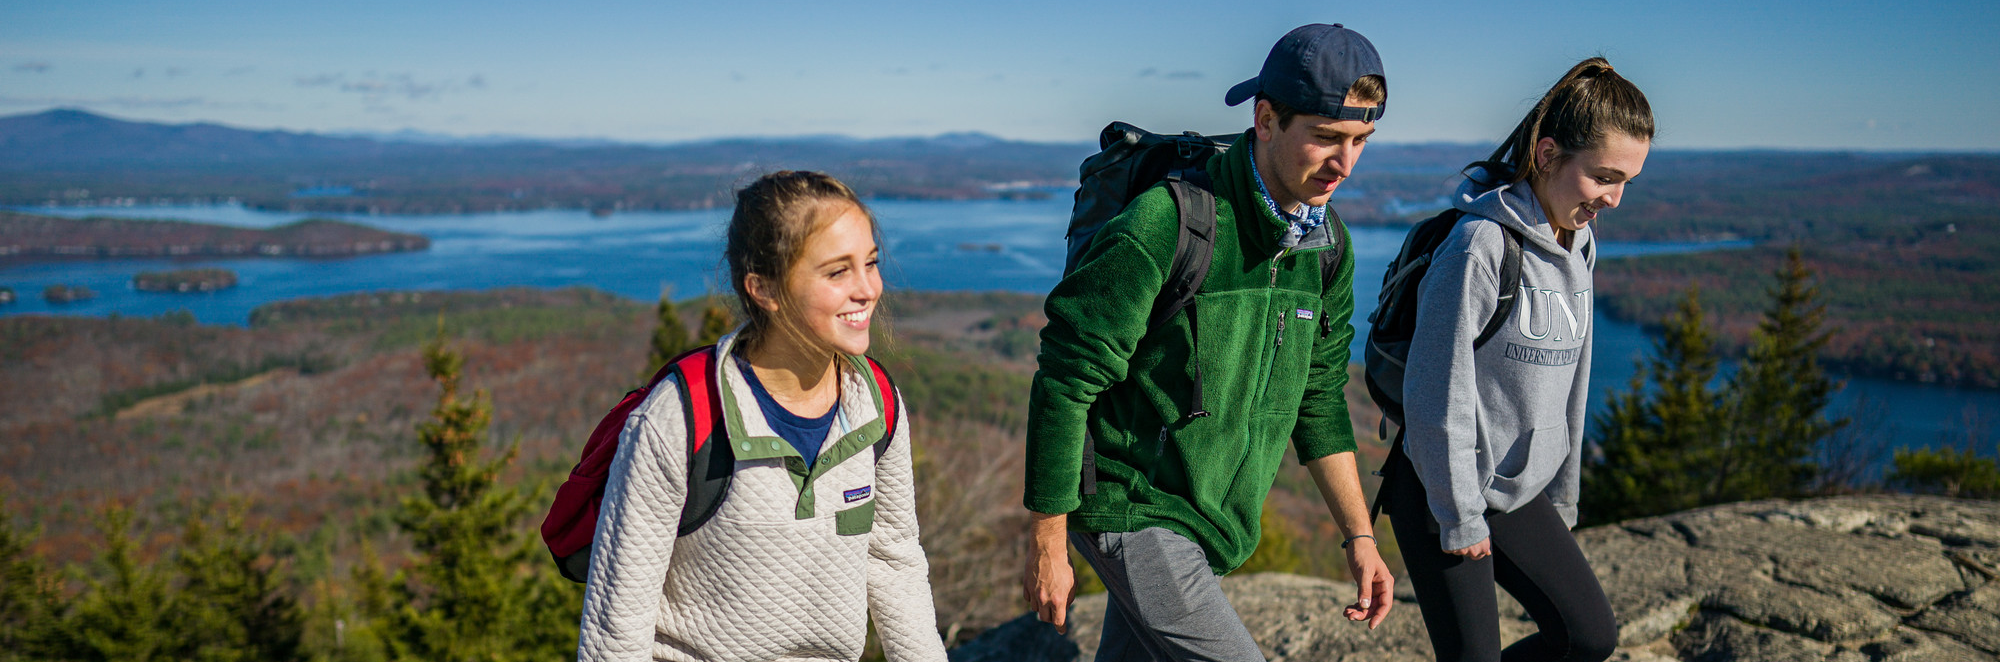 Three students walking along a mountaintop with views of lakes in the background